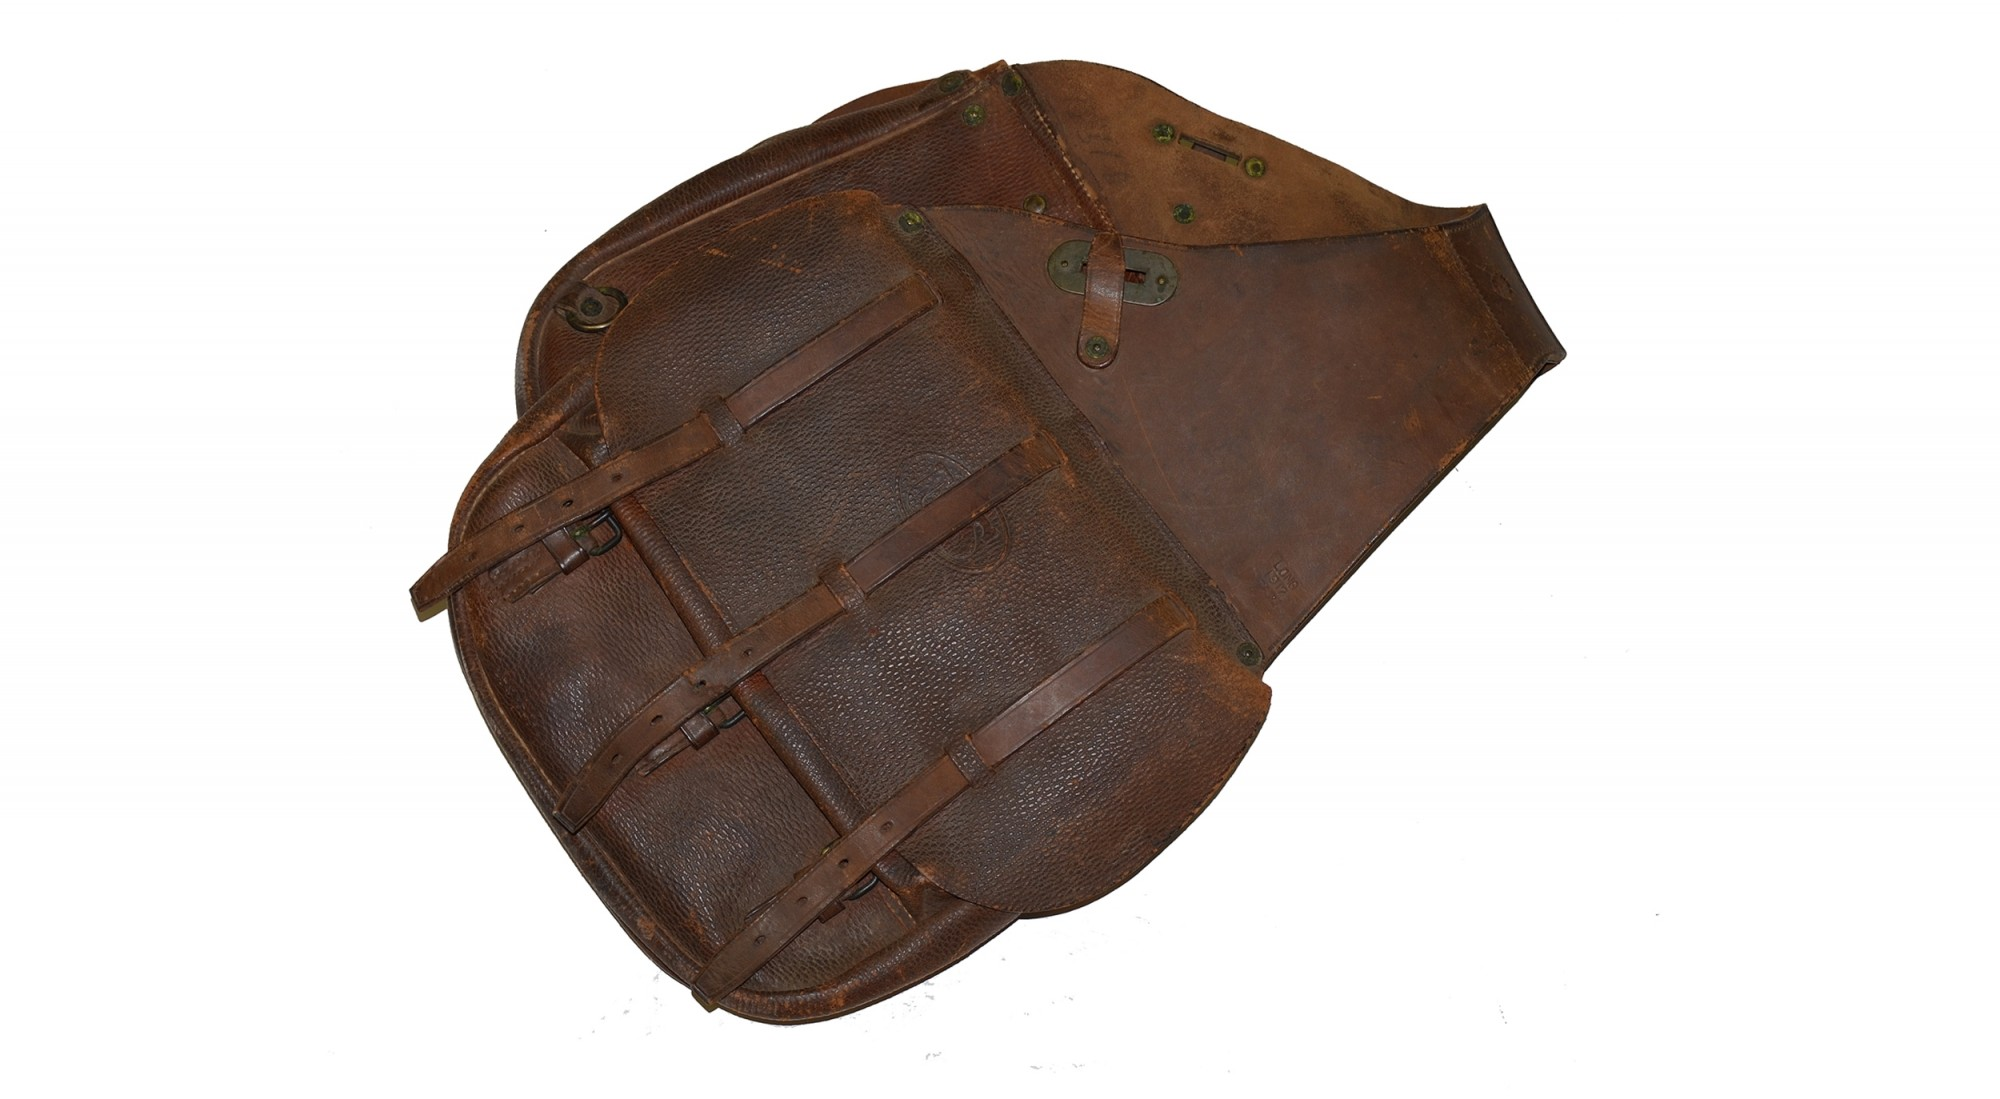 WORLD WAR ONE US LEATHER SADDLE BAGS DATED 1917